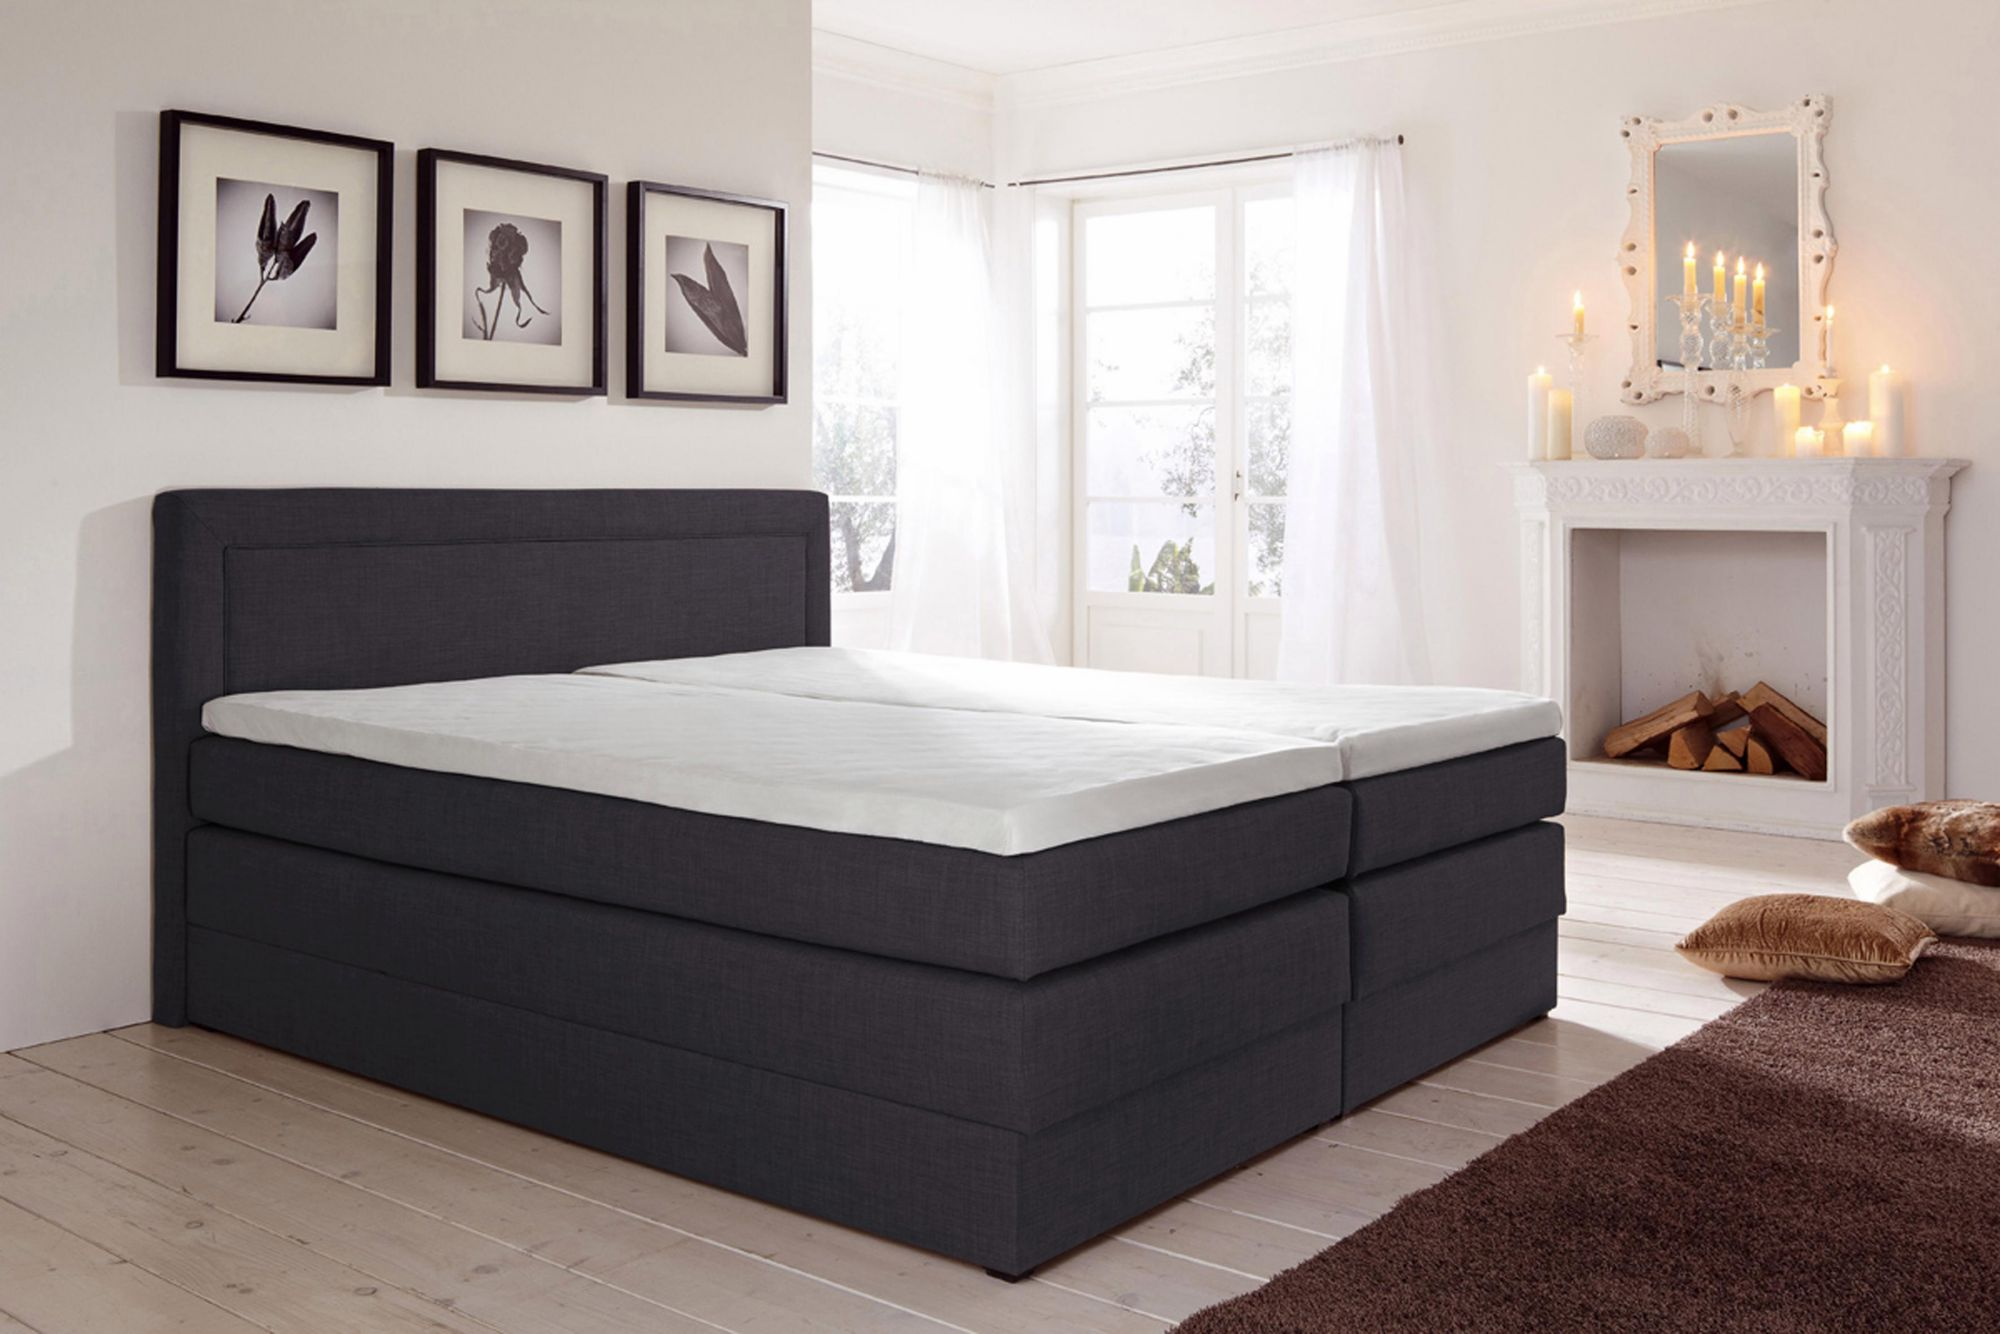 hapo boxspringbett mit bettkasten schwab versand betten. Black Bedroom Furniture Sets. Home Design Ideas